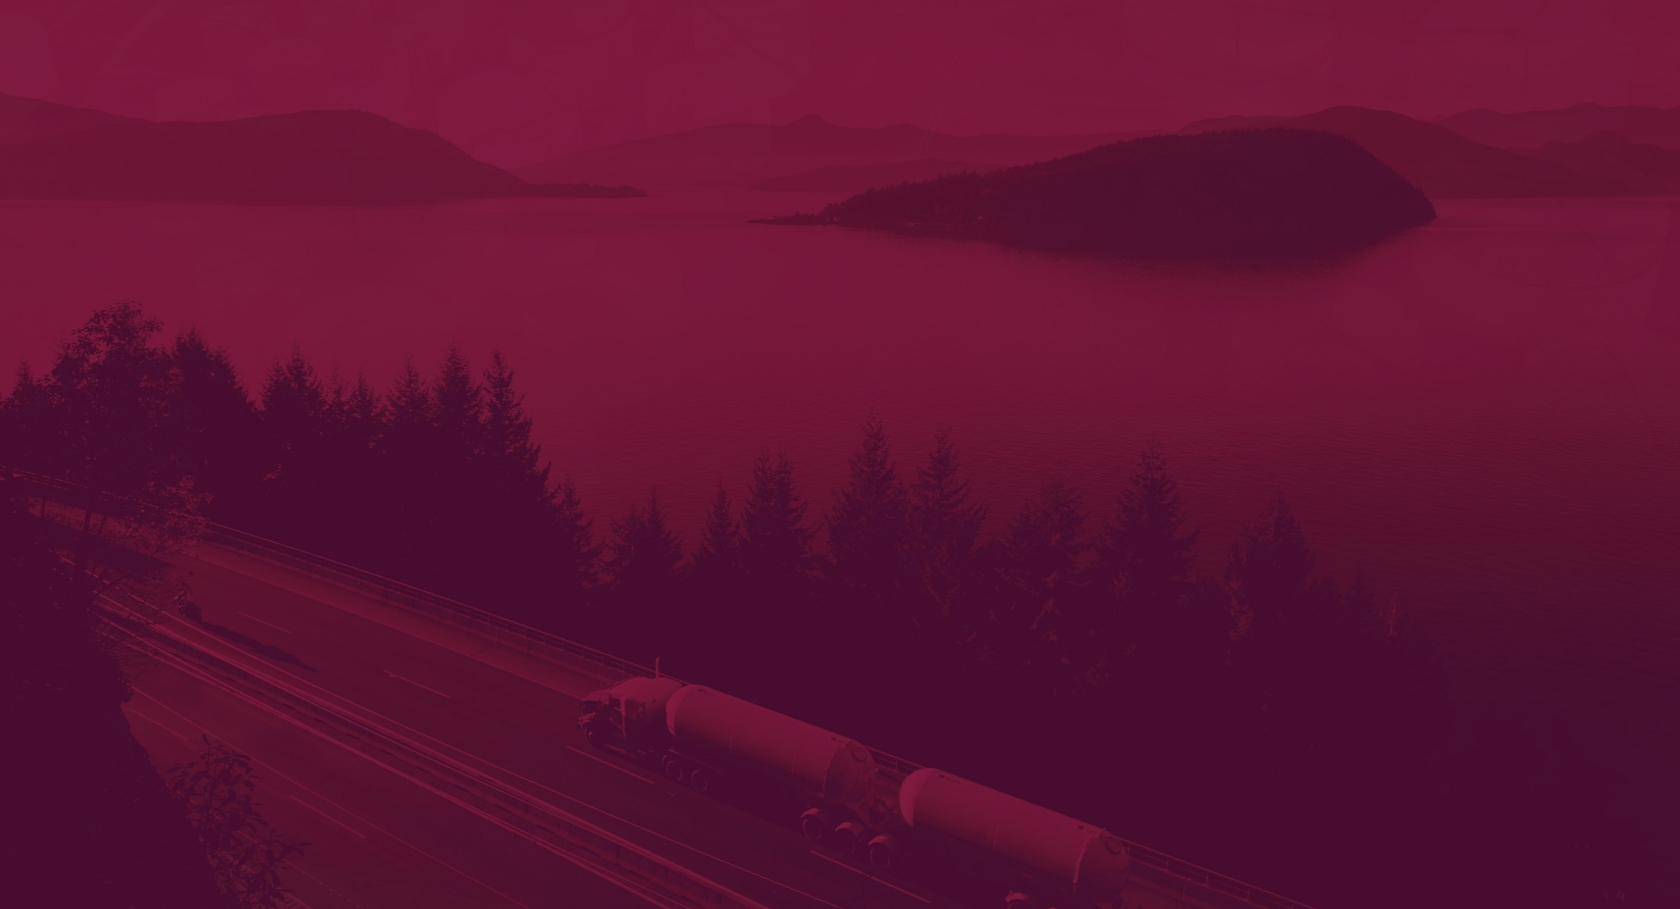 Oregon highway with a semi truck